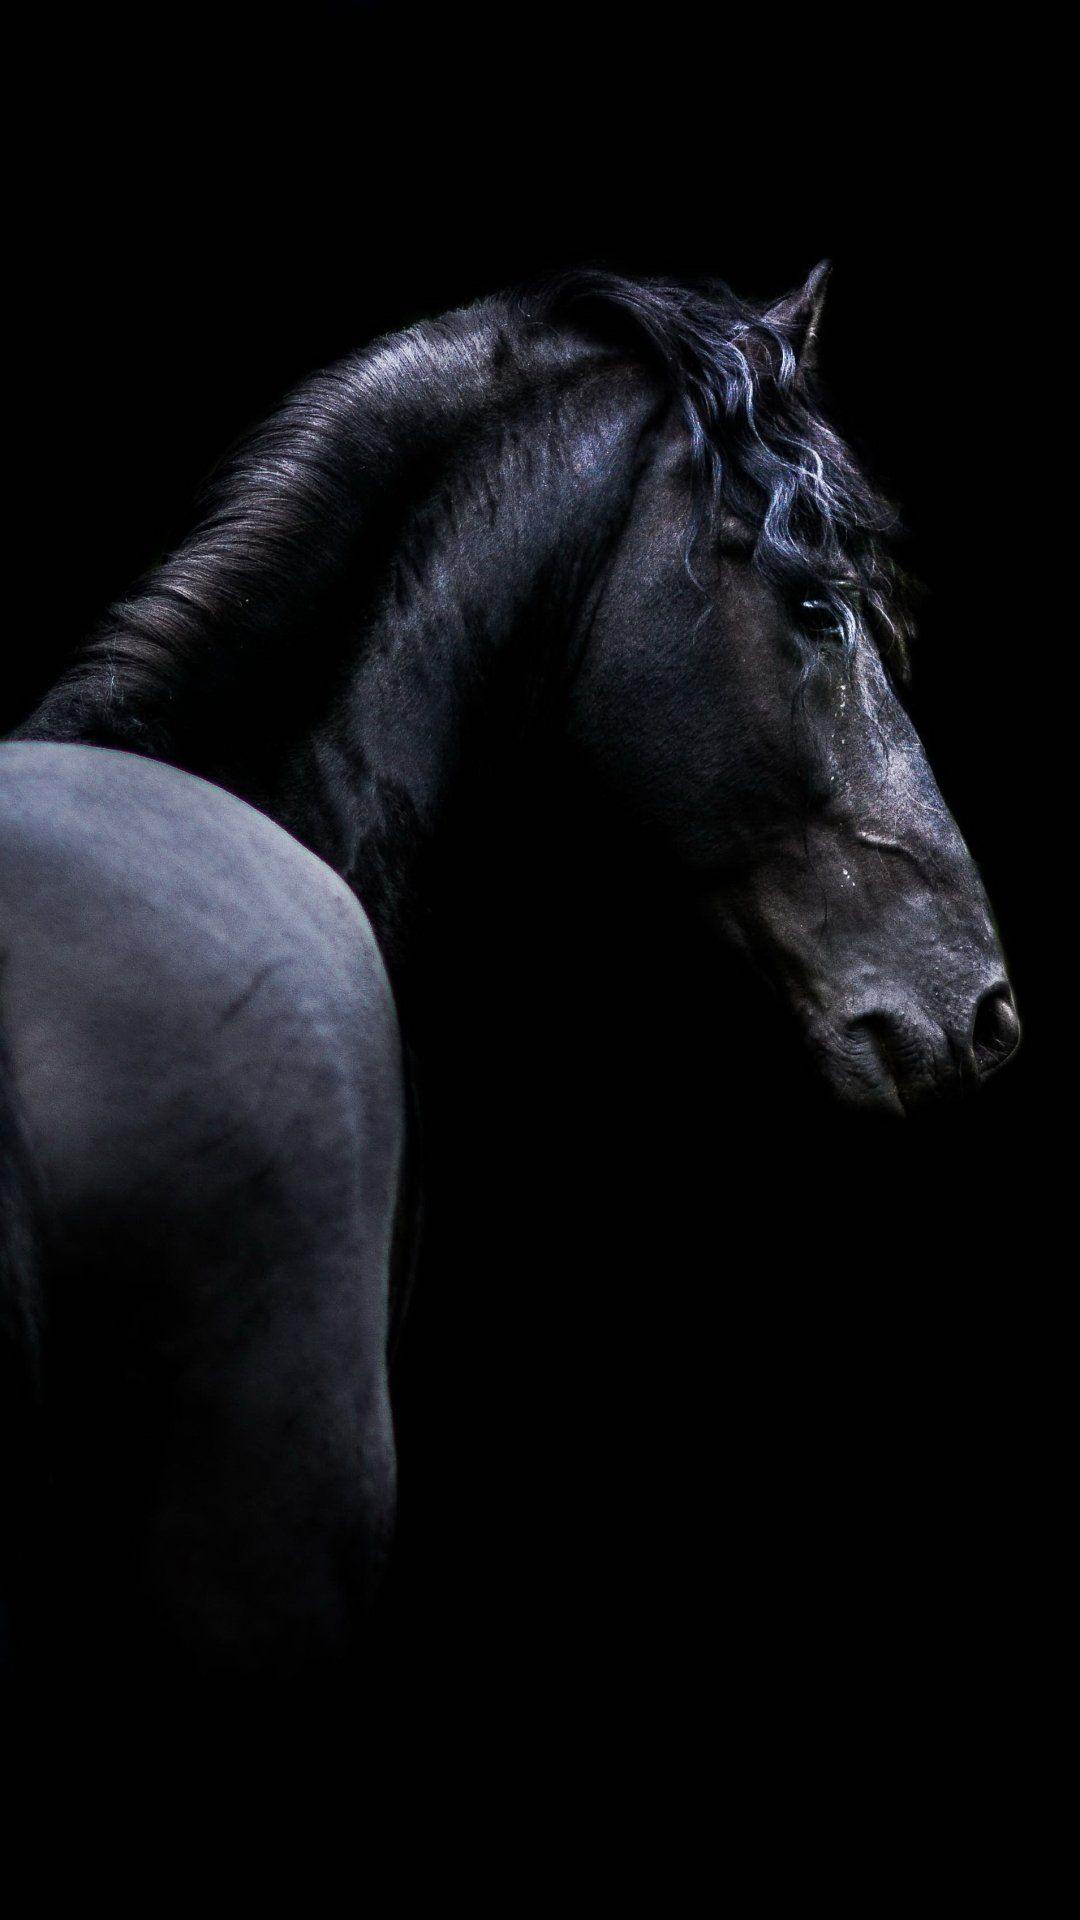 Black Horse Iphone Wallpapers Wallpaper Cave